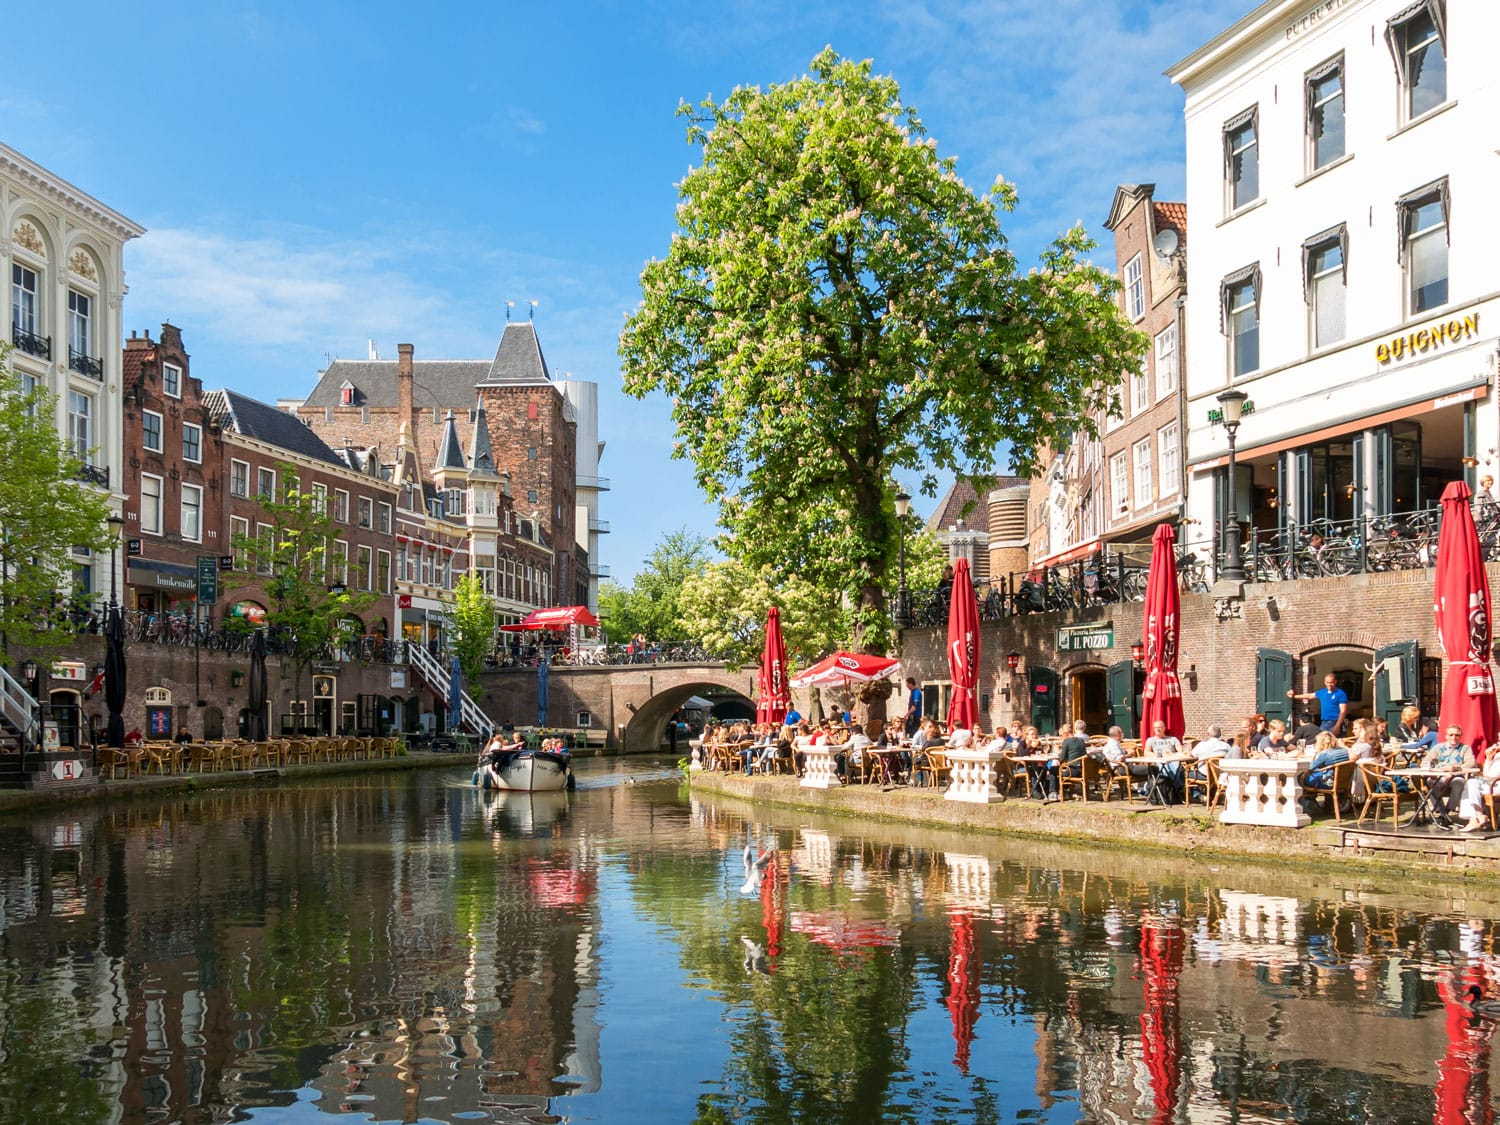 Oudaen Castle and people on outdoor terrace of restaurants alongside Oudegracht canal in the city of Utrecht, Netherlands